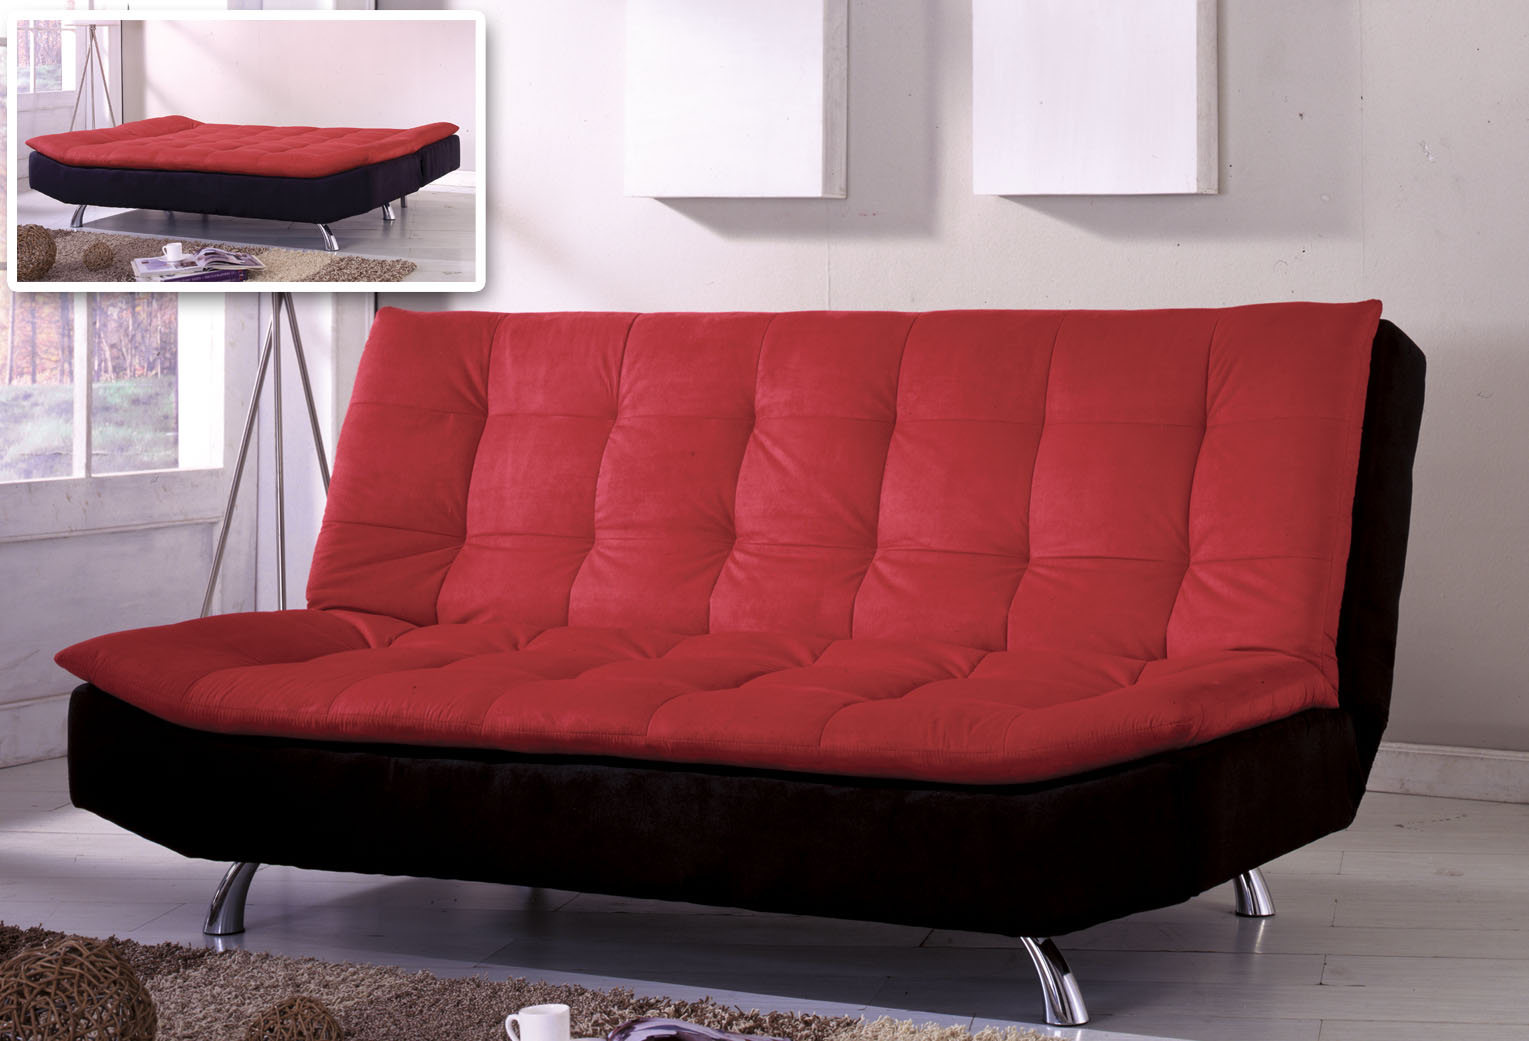 ikea futon mattress uk roselawnlutheran. Black Bedroom Furniture Sets. Home Design Ideas